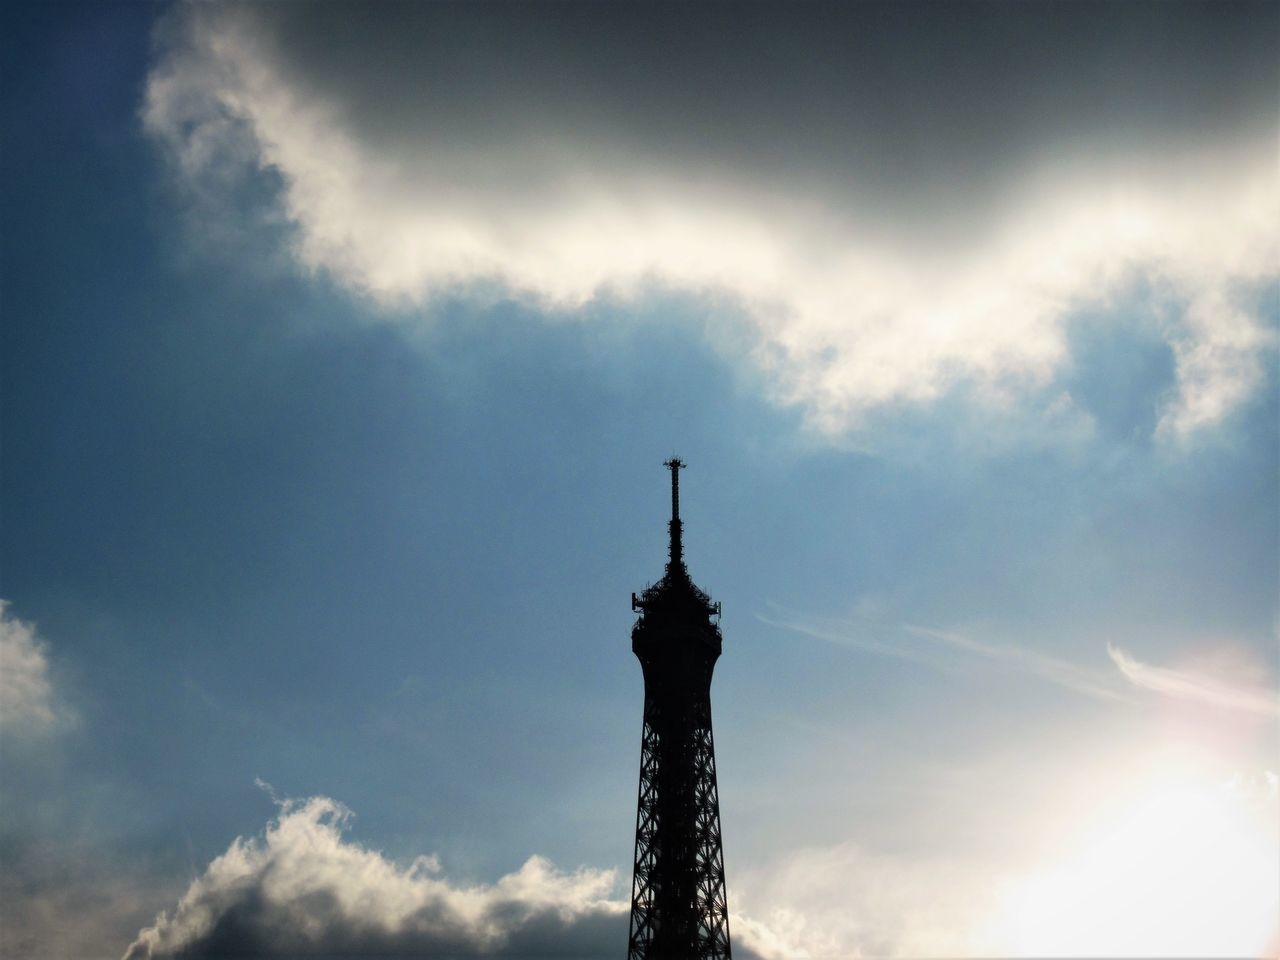 Architecture Building Exterior Built Structure Cloud - Sky Day Eiffel Tower Low Angle View Nature No People Outdoors Silhouette Sky